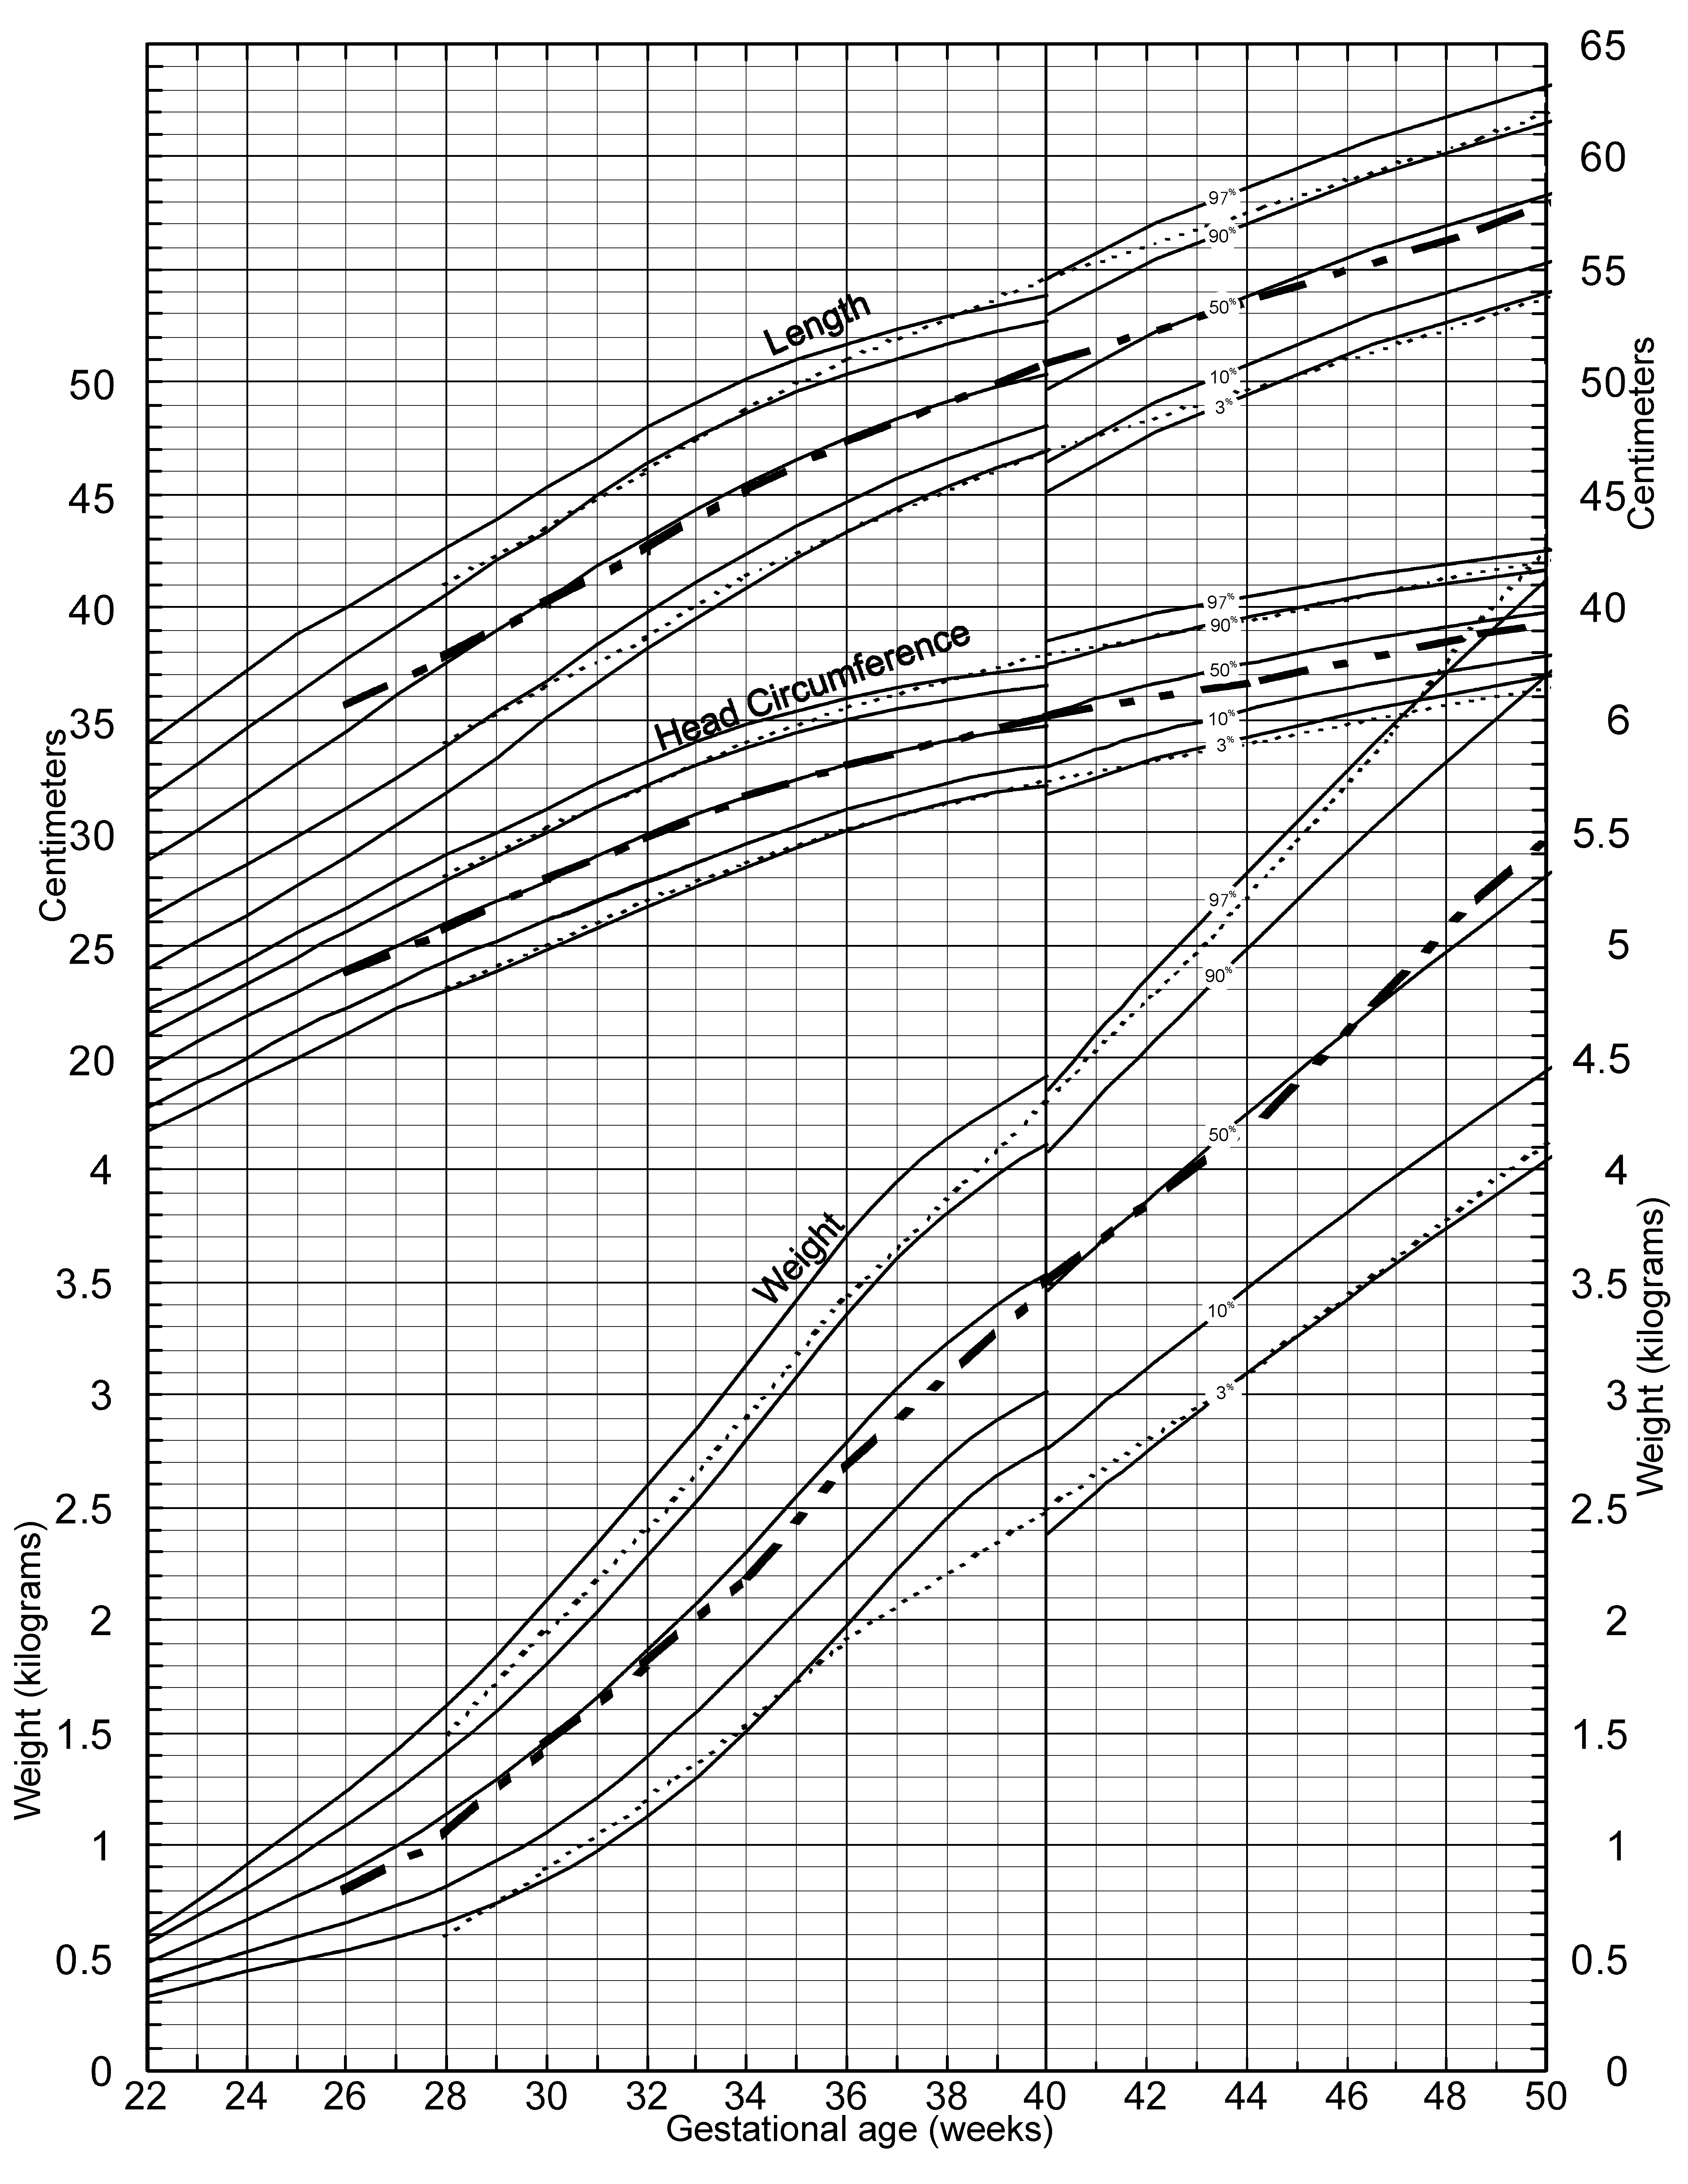 A new growth chart for preterm babies babson and bendas chart 12887200327moesm3esmg nvjuhfo Gallery